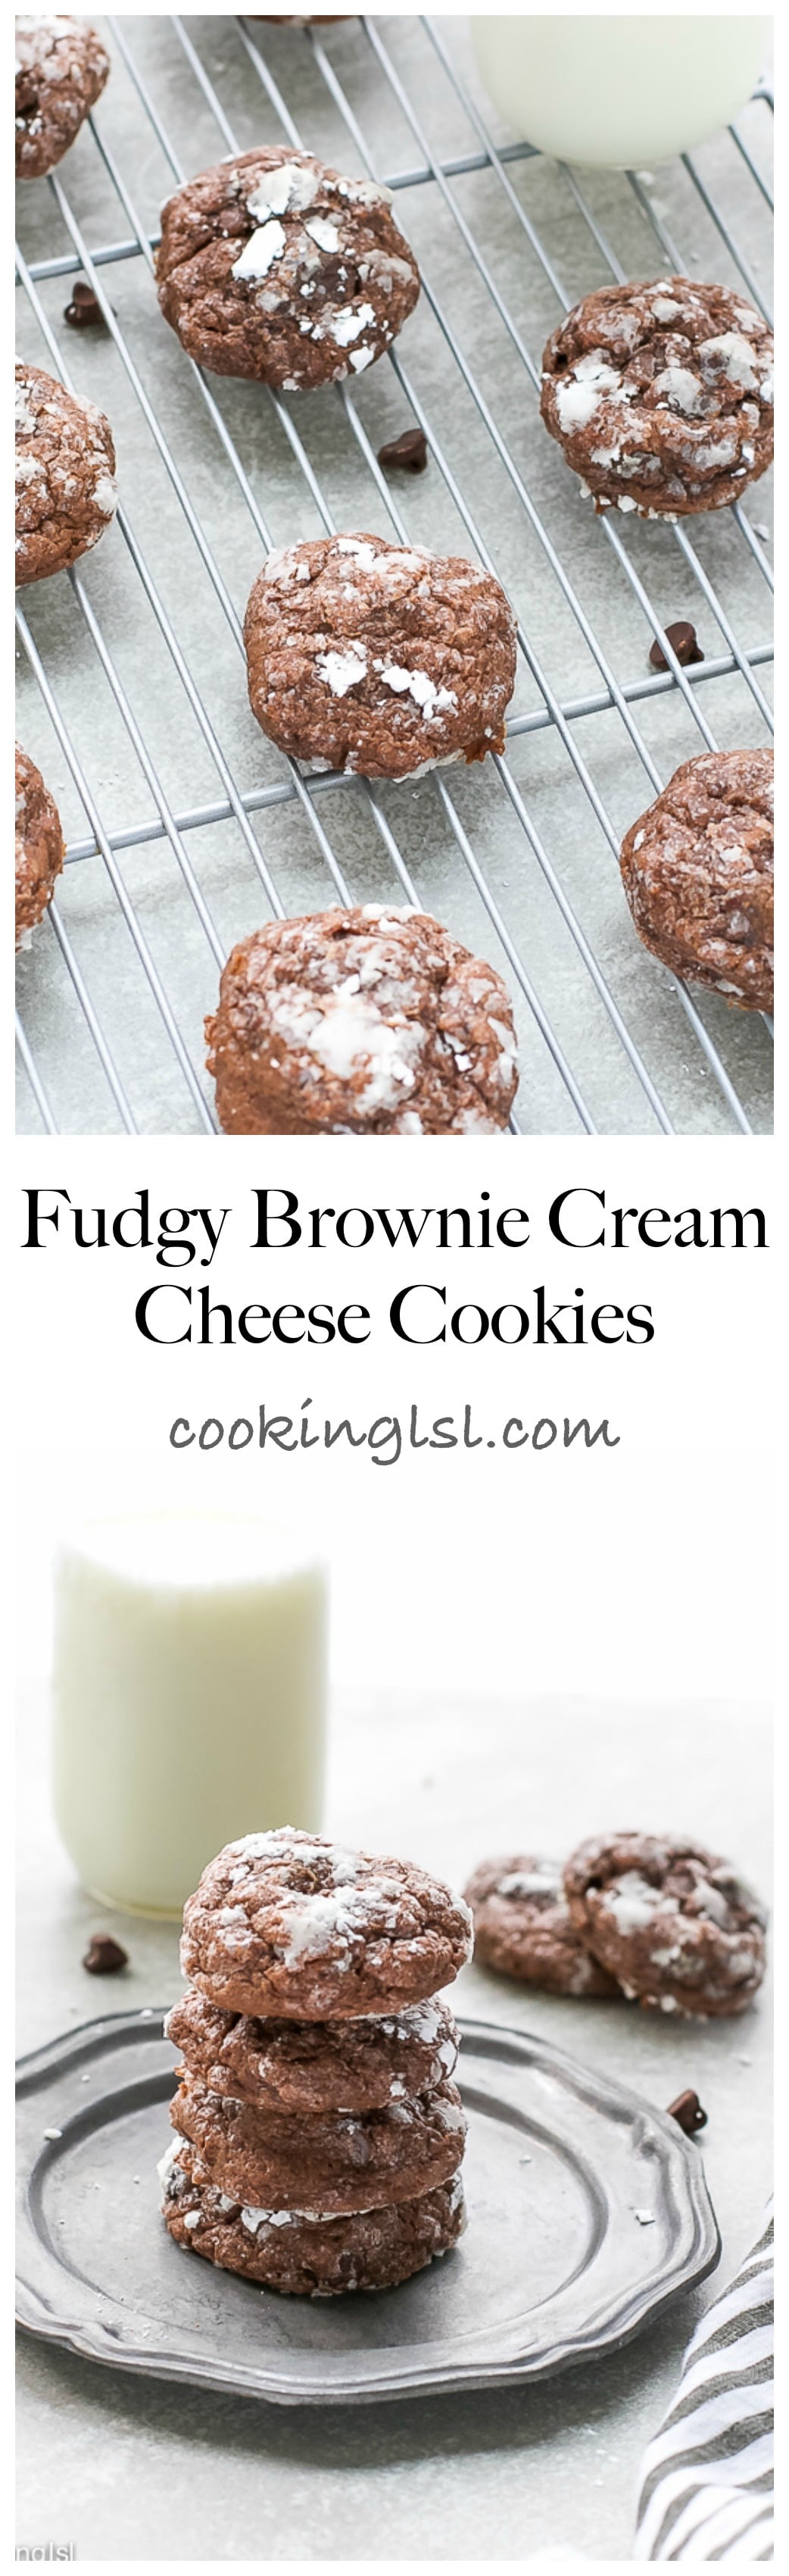 Fudgy-Brownie-Cream-Cheese-Cookies-Recipe